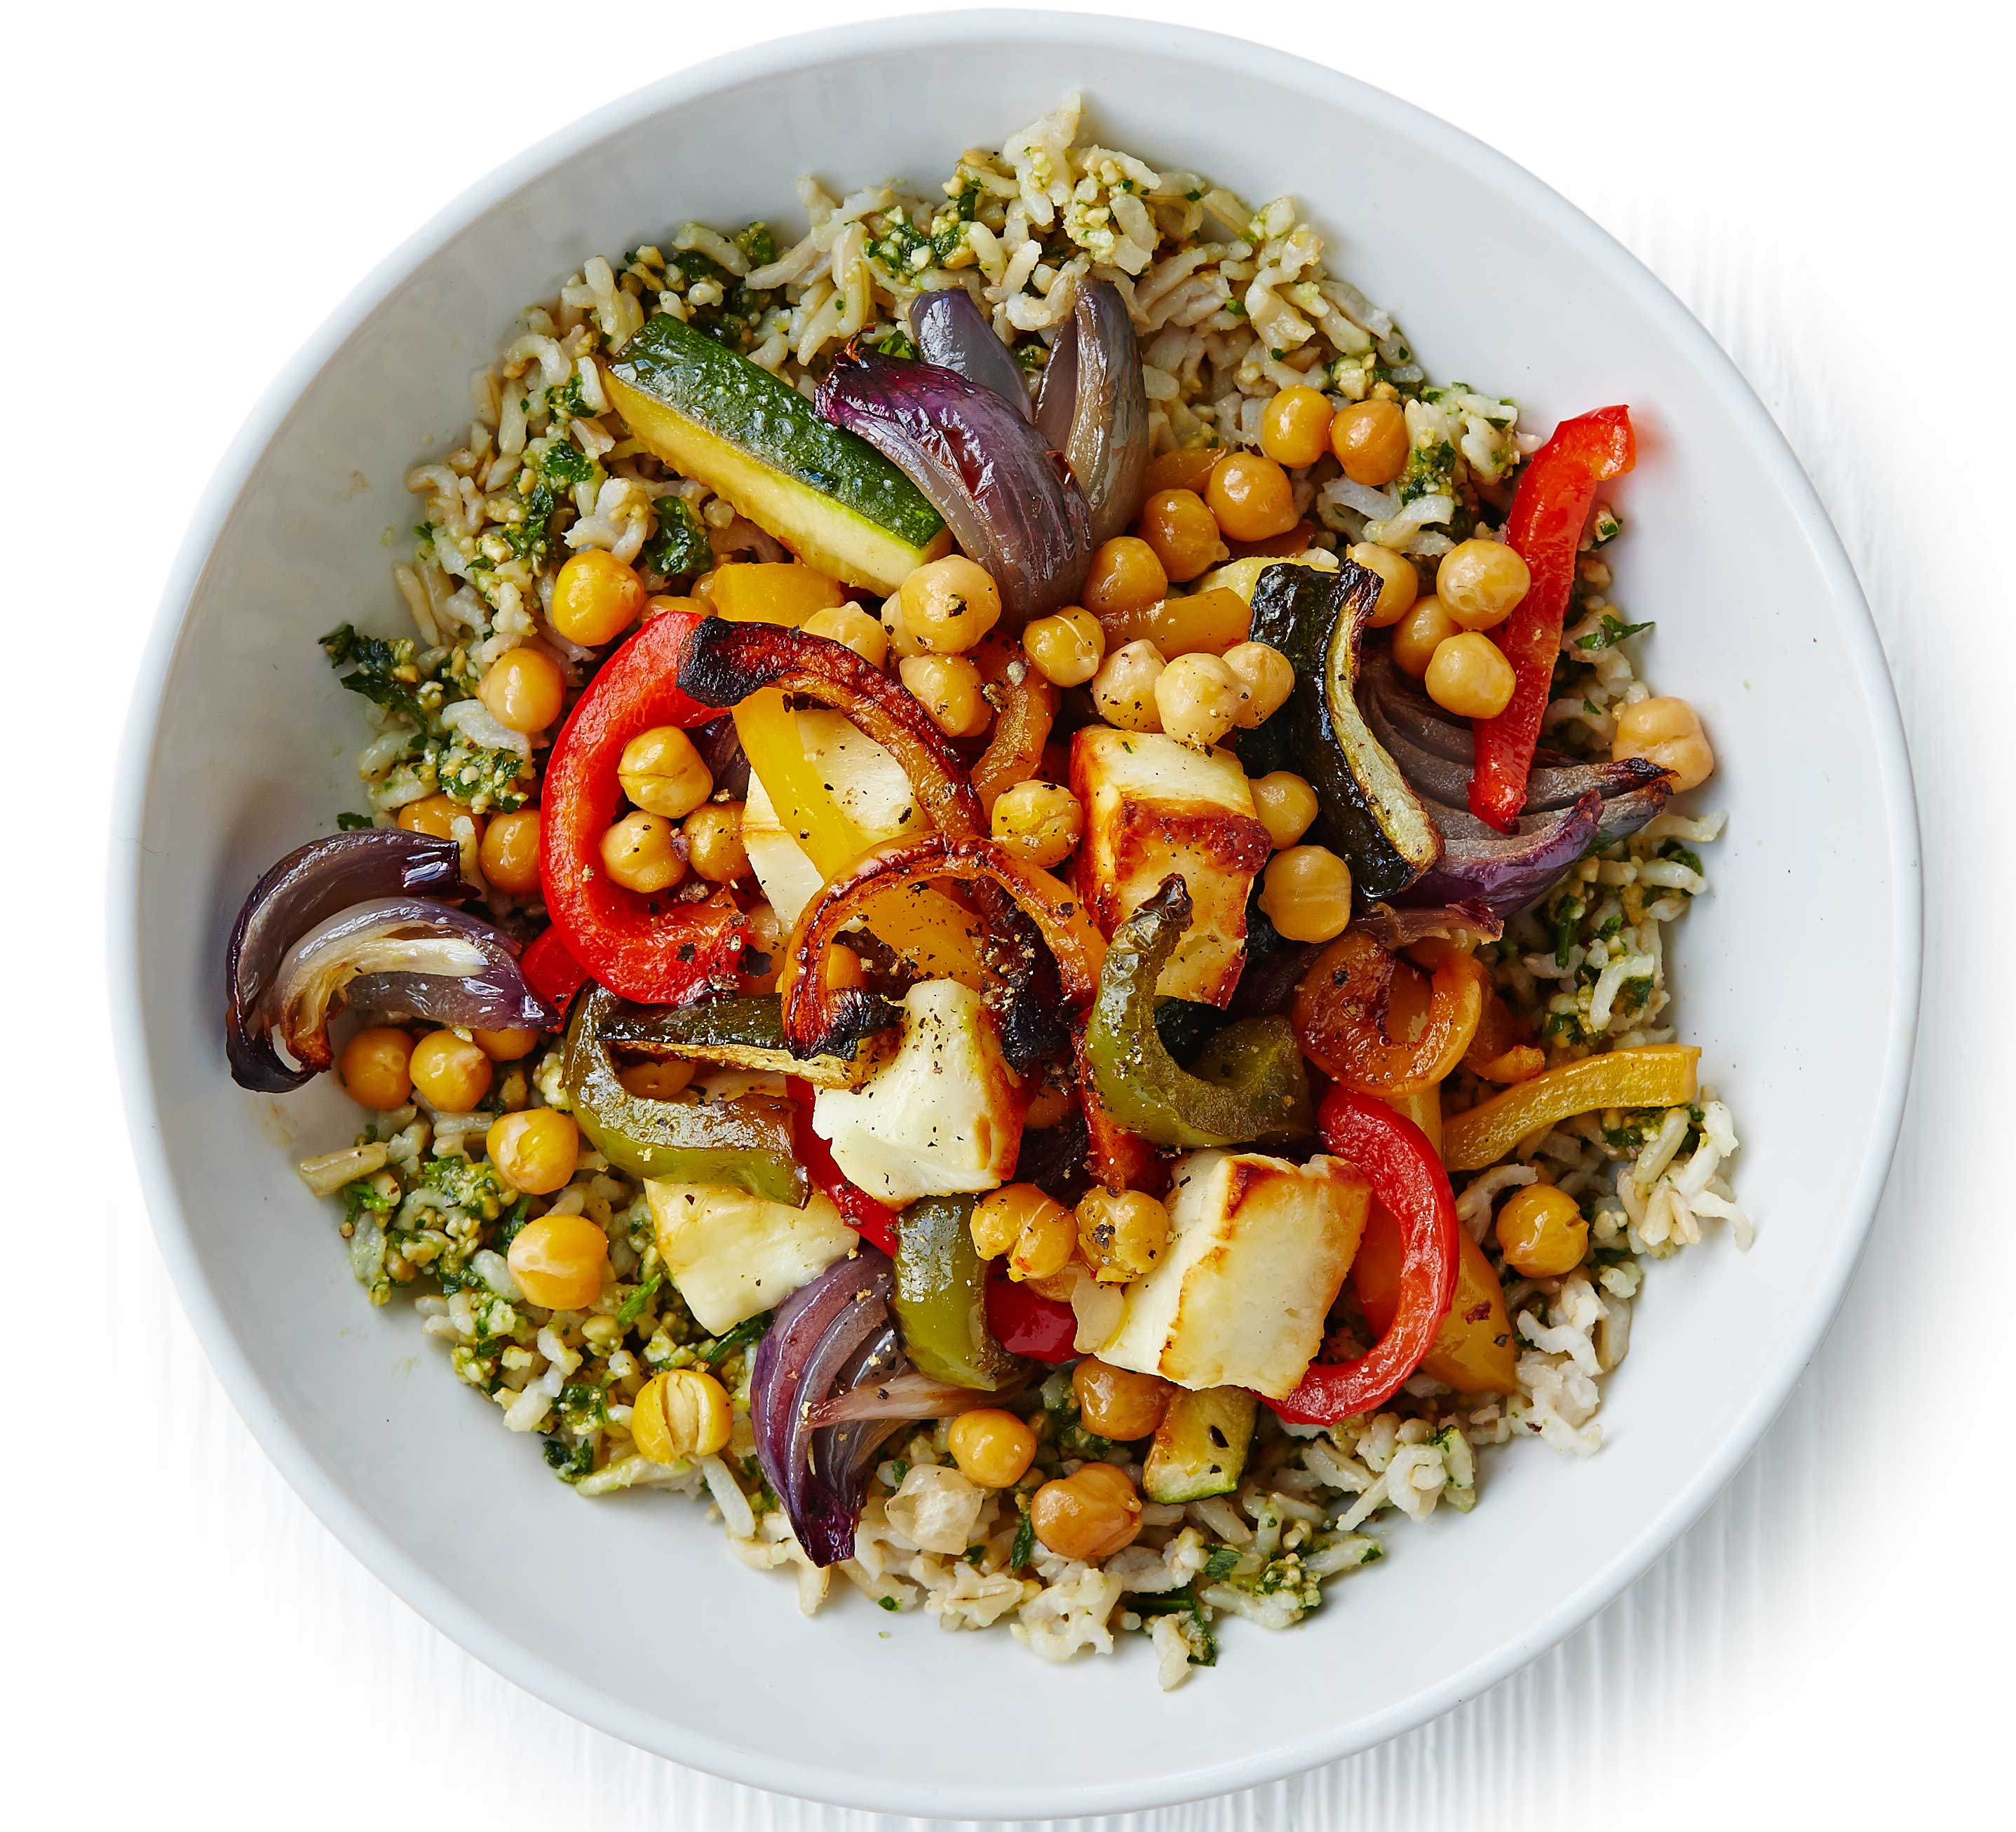 Herby rice with roasted veg, chickpeas & halloumi